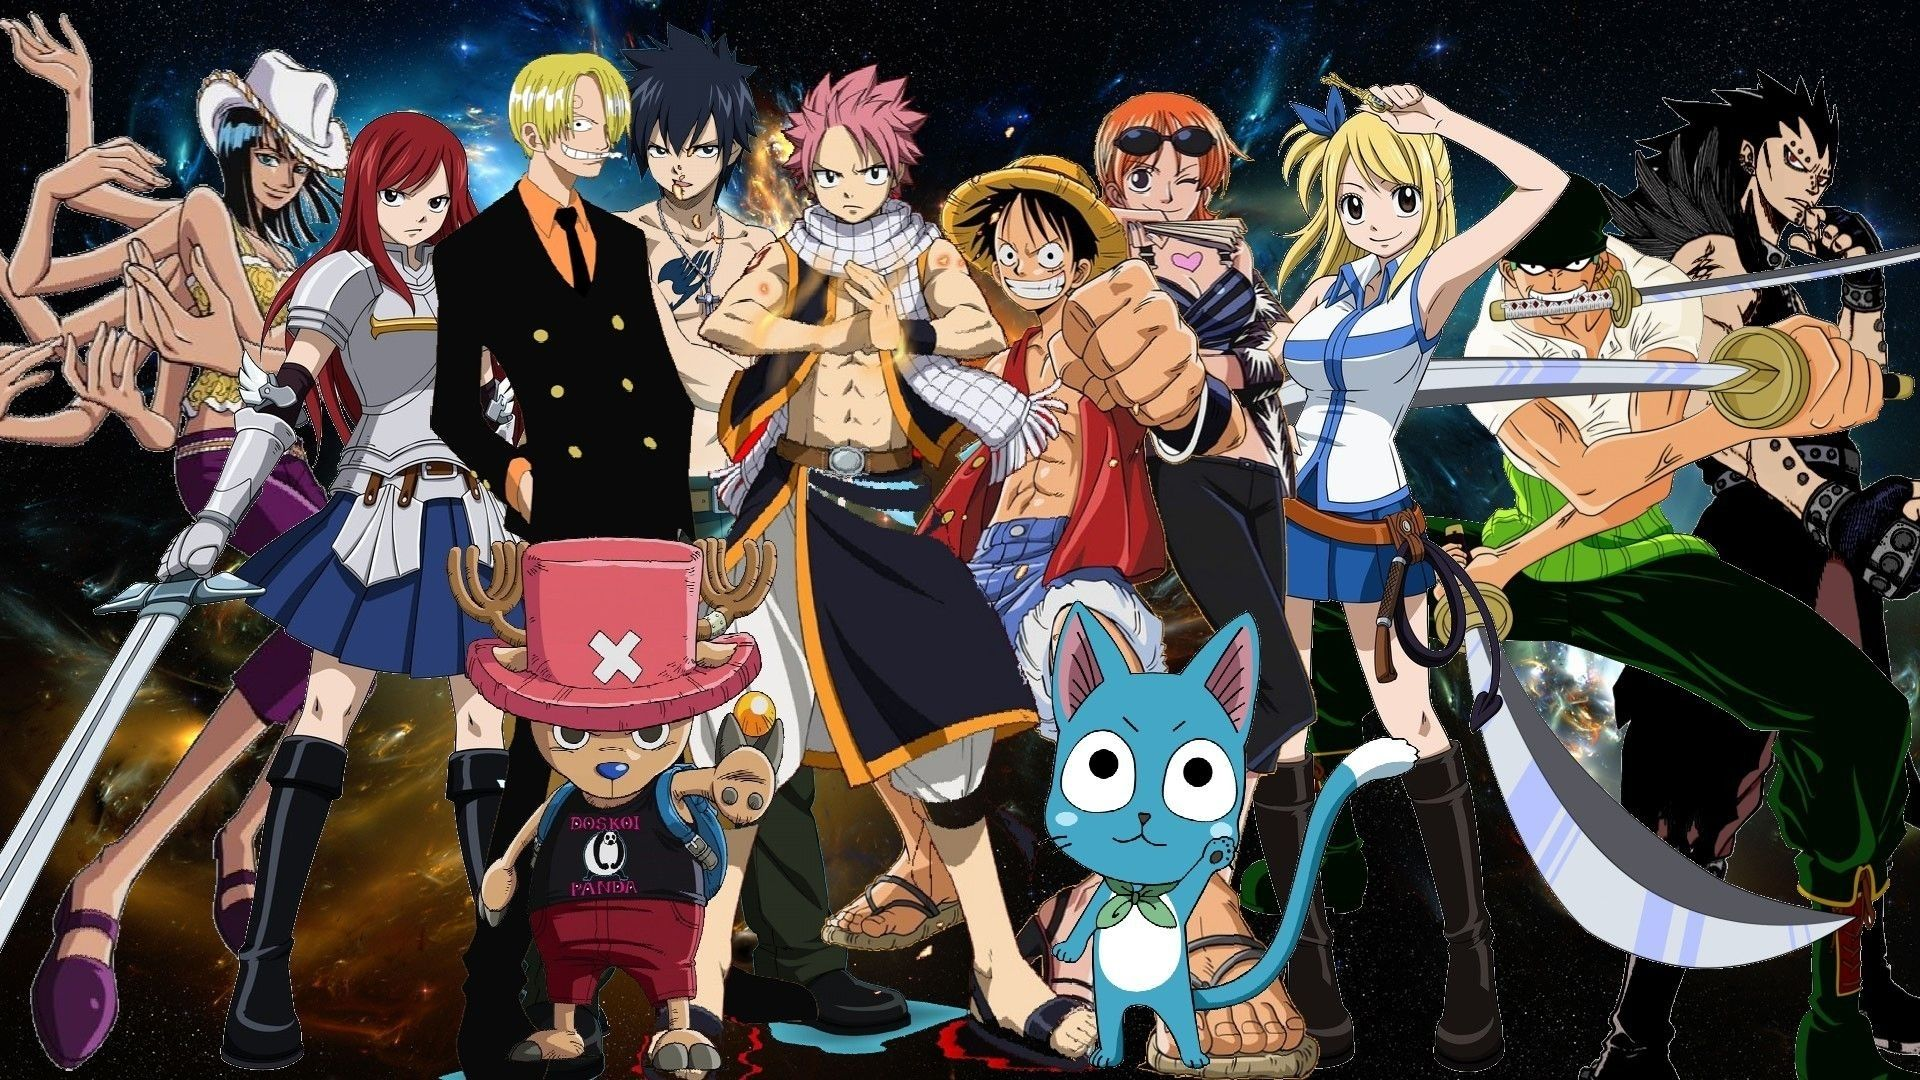 Fairy Tail Pc Wallpapers Top Free Fairy Tail Pc Backgrounds Wallpaperaccess